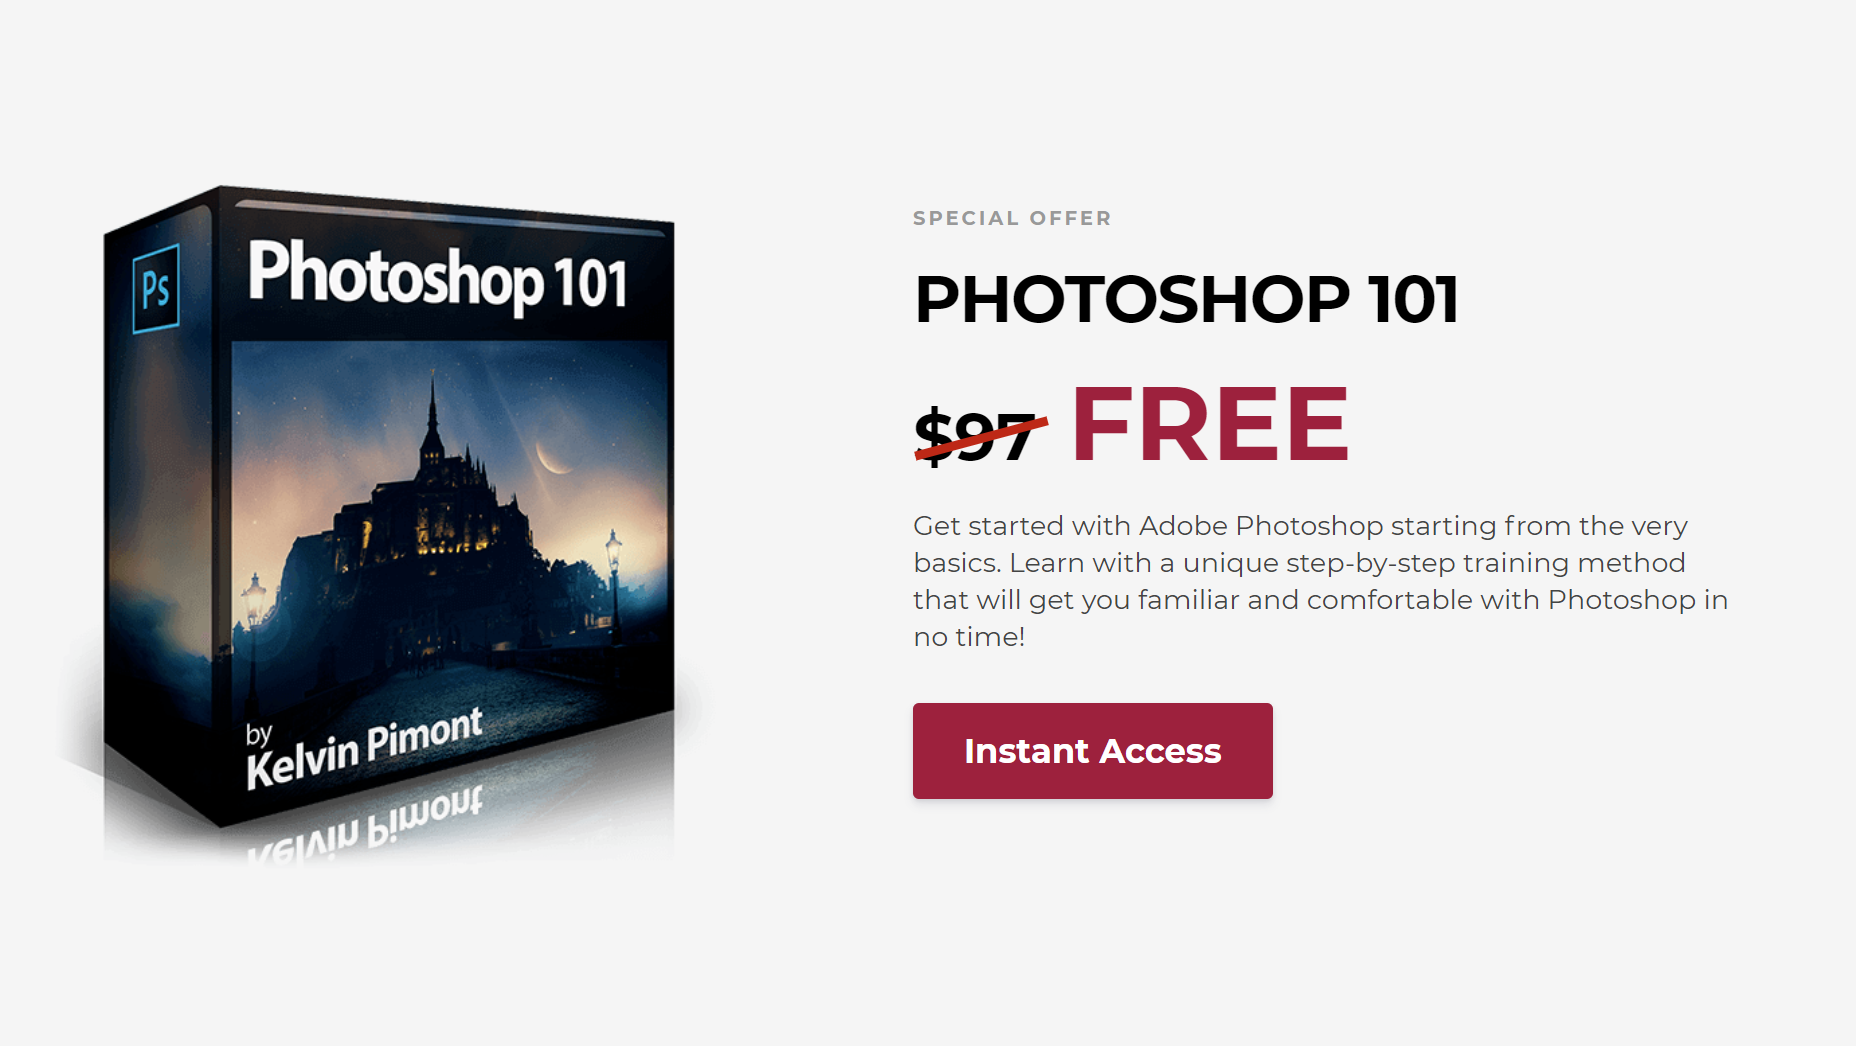 Cheap Photo: Free Photoshop 101, Big Sales on LR Presets and More